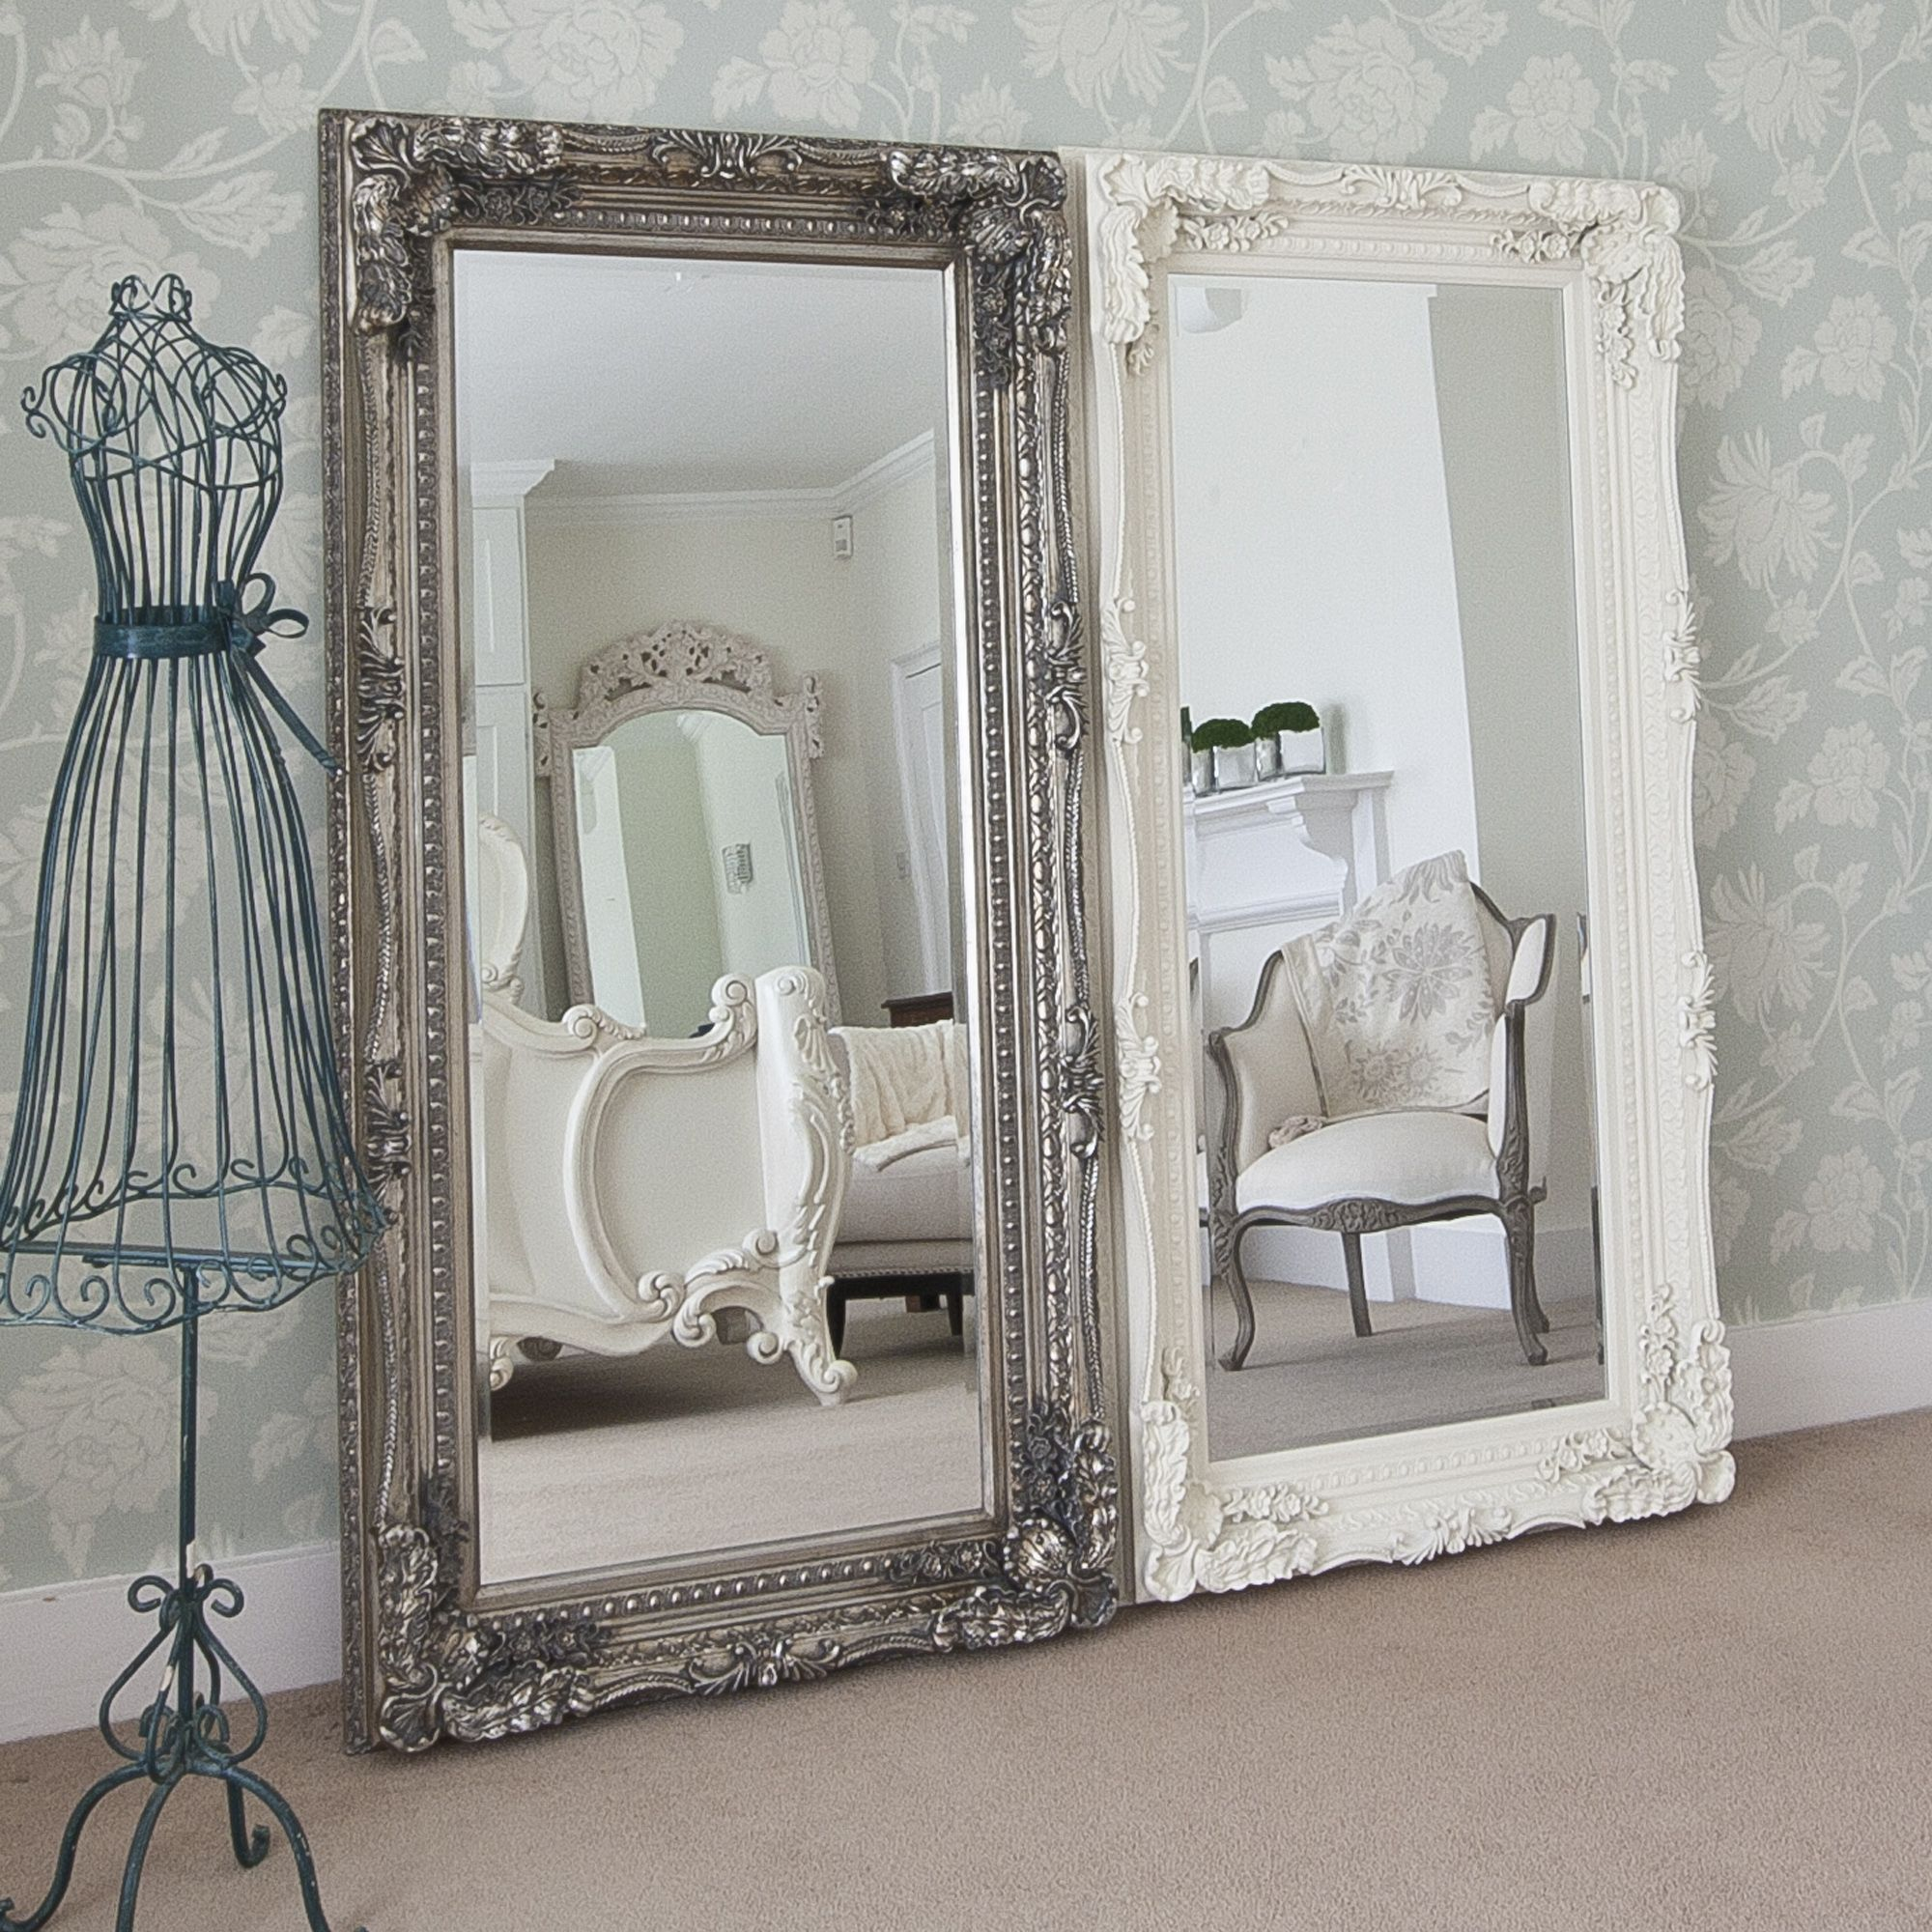 Grand Silver Full Length Dressing Mirror